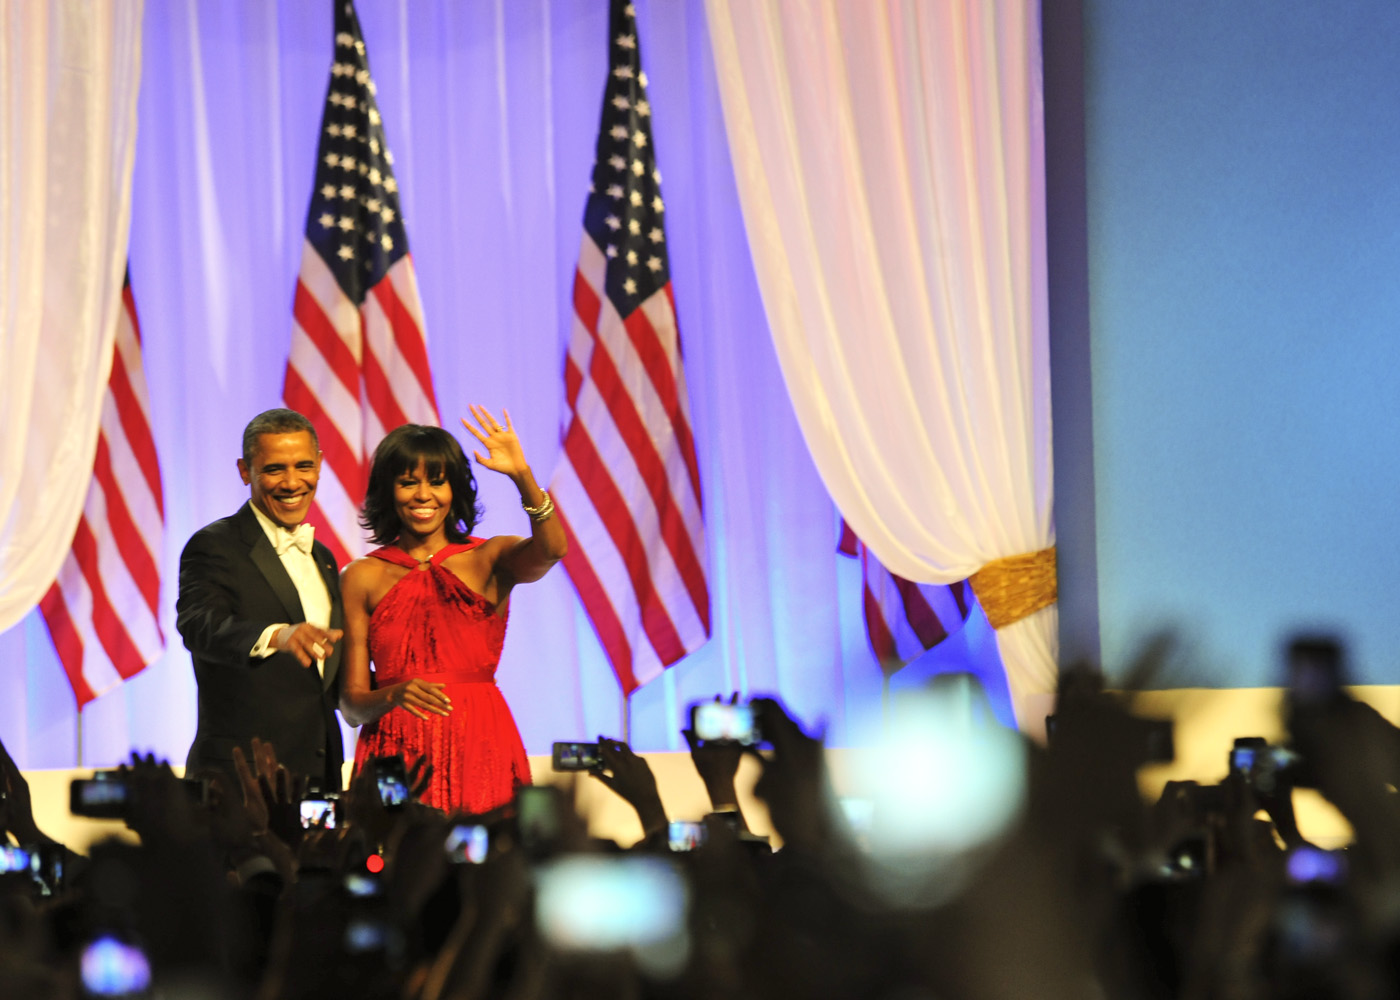 Michele Obama at Inauguration Ball 2012